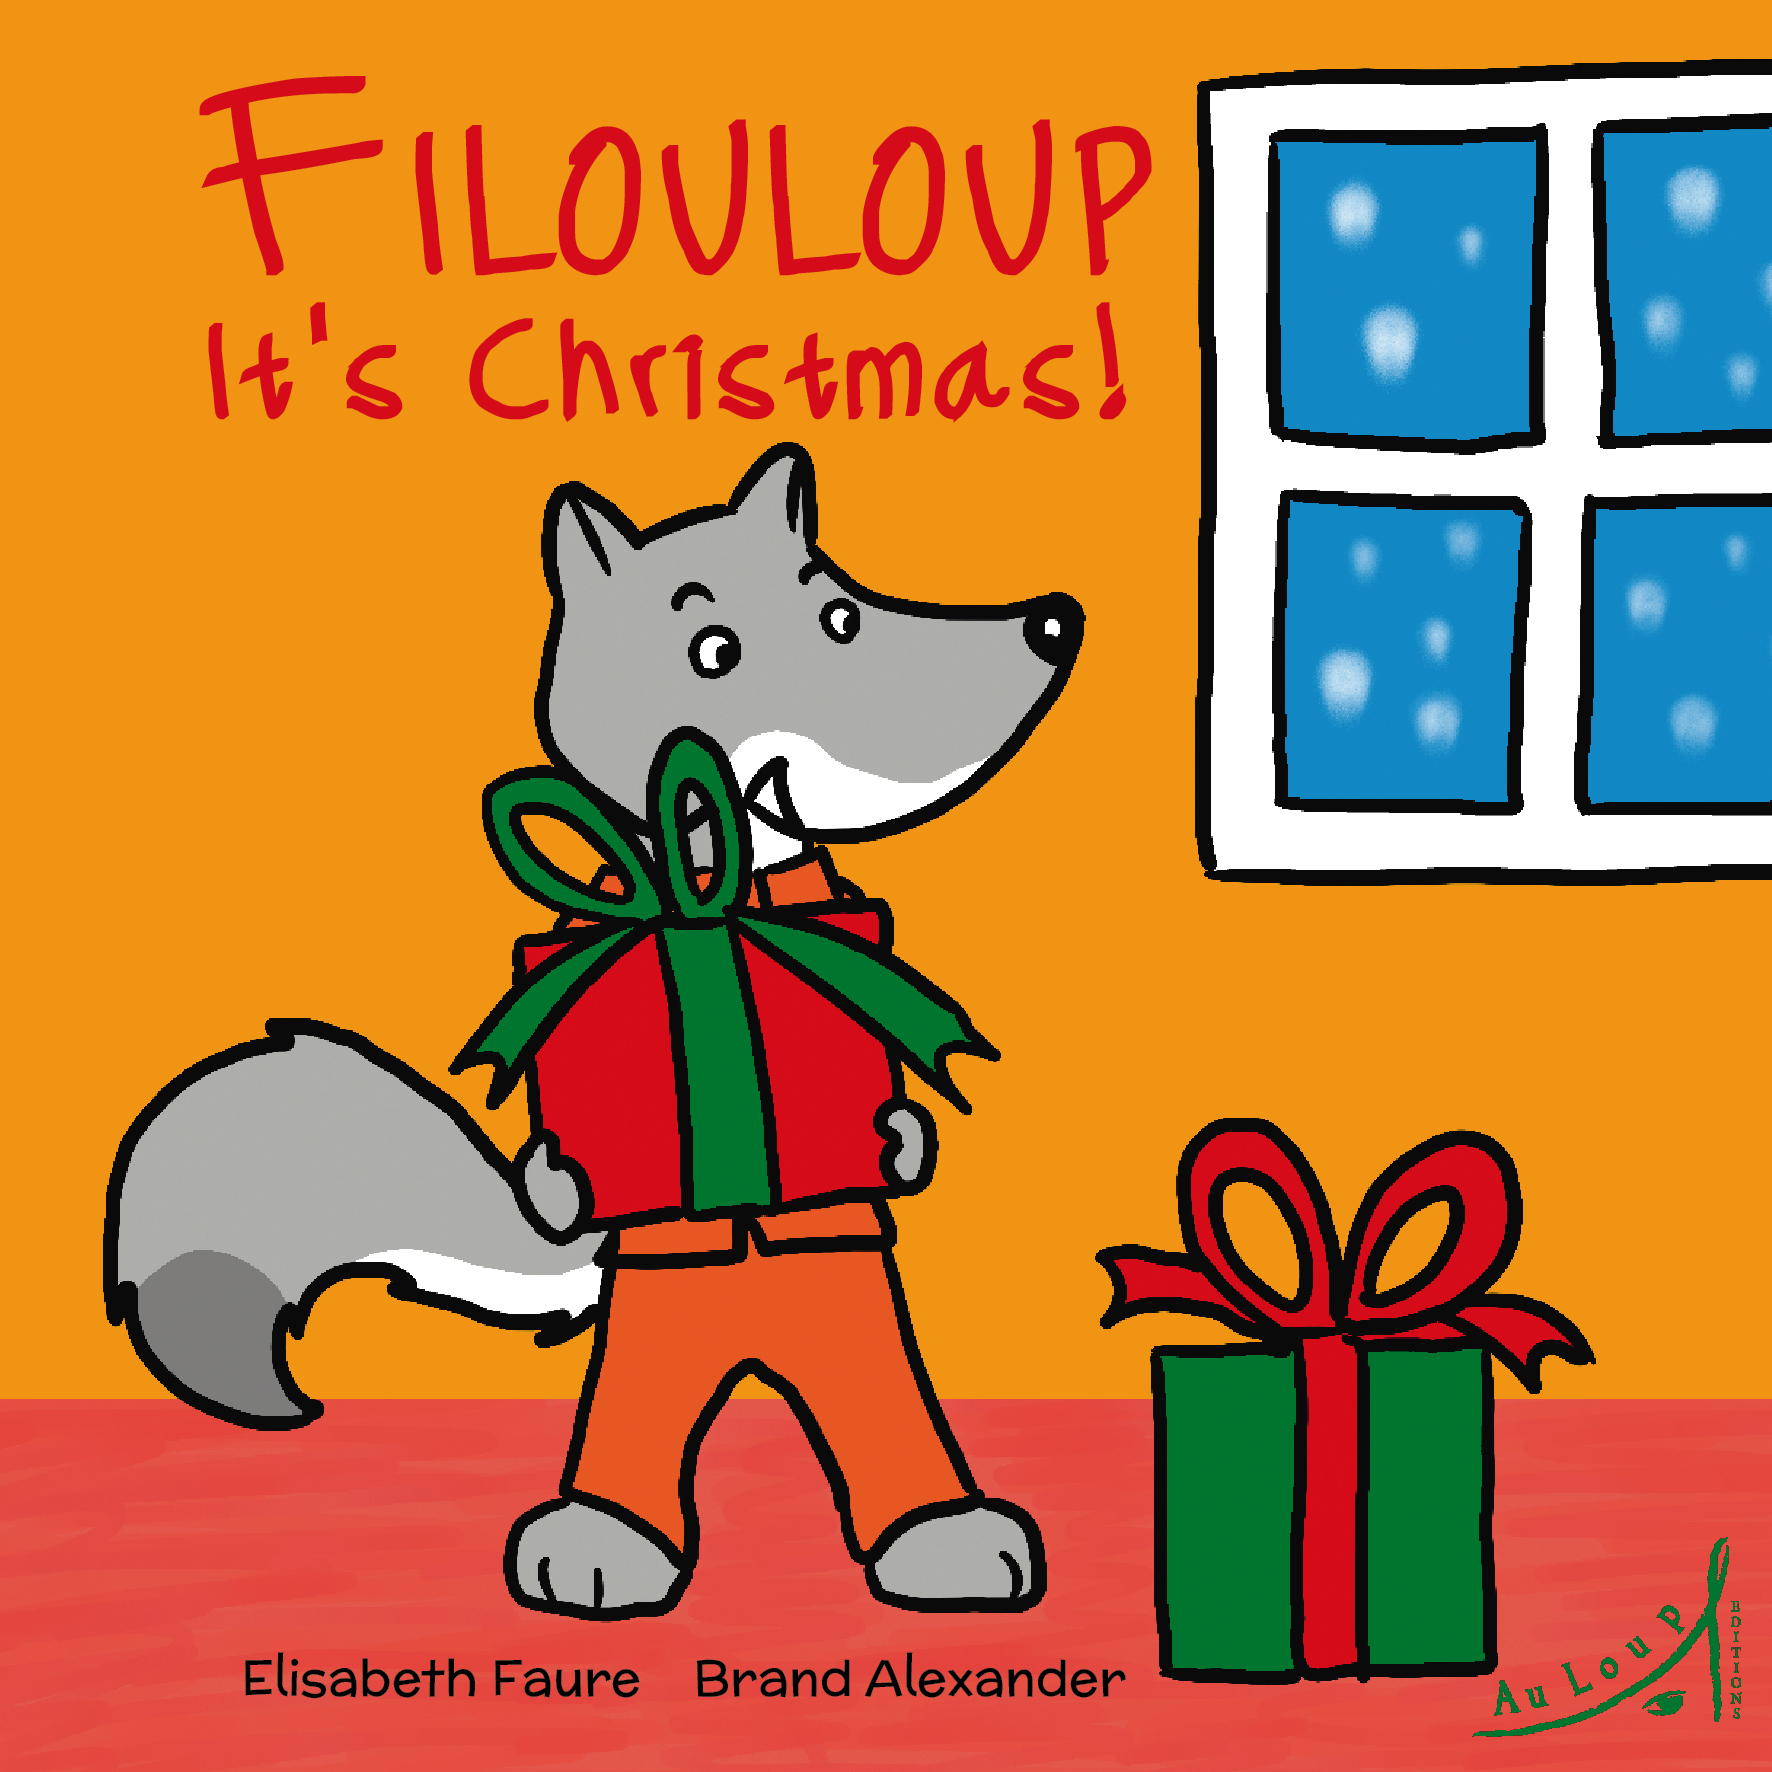 FILOULOUP - IT'S CHRISTMAS